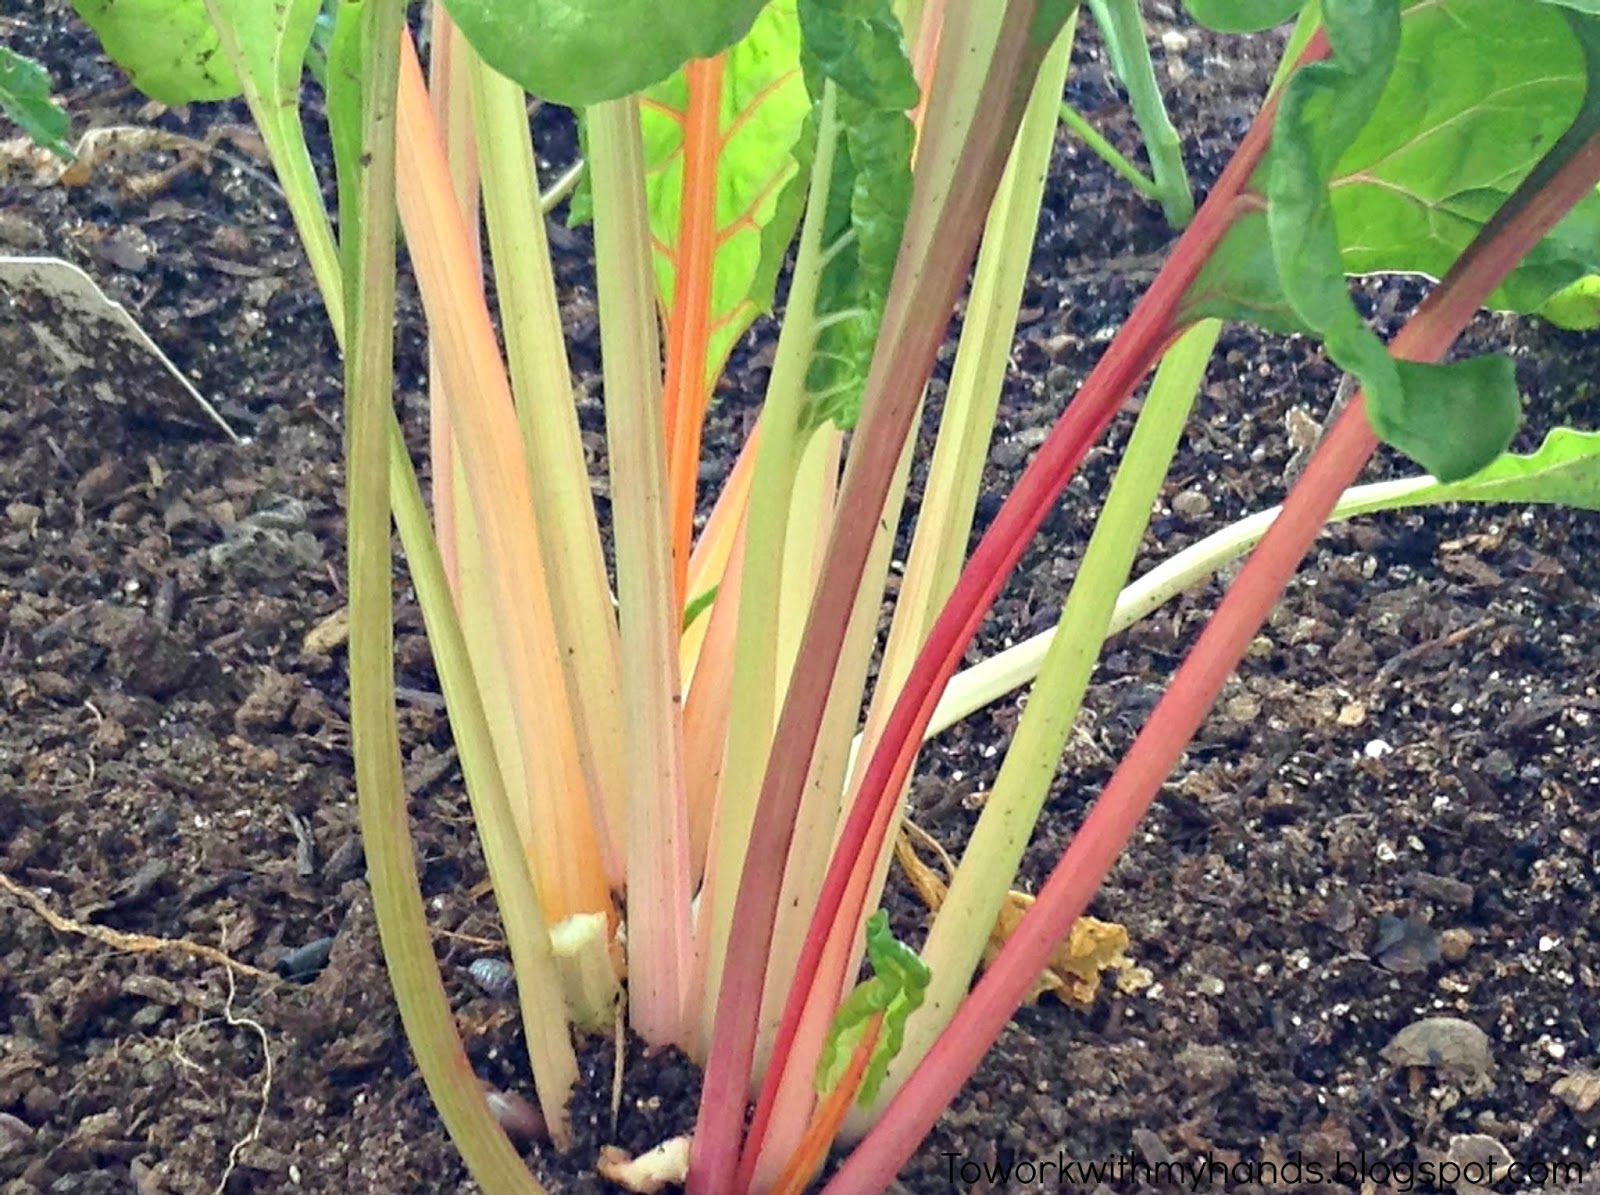 Practically loaded with vitamins and minerals, Swiss chard is considered a nutritional powerhouse!